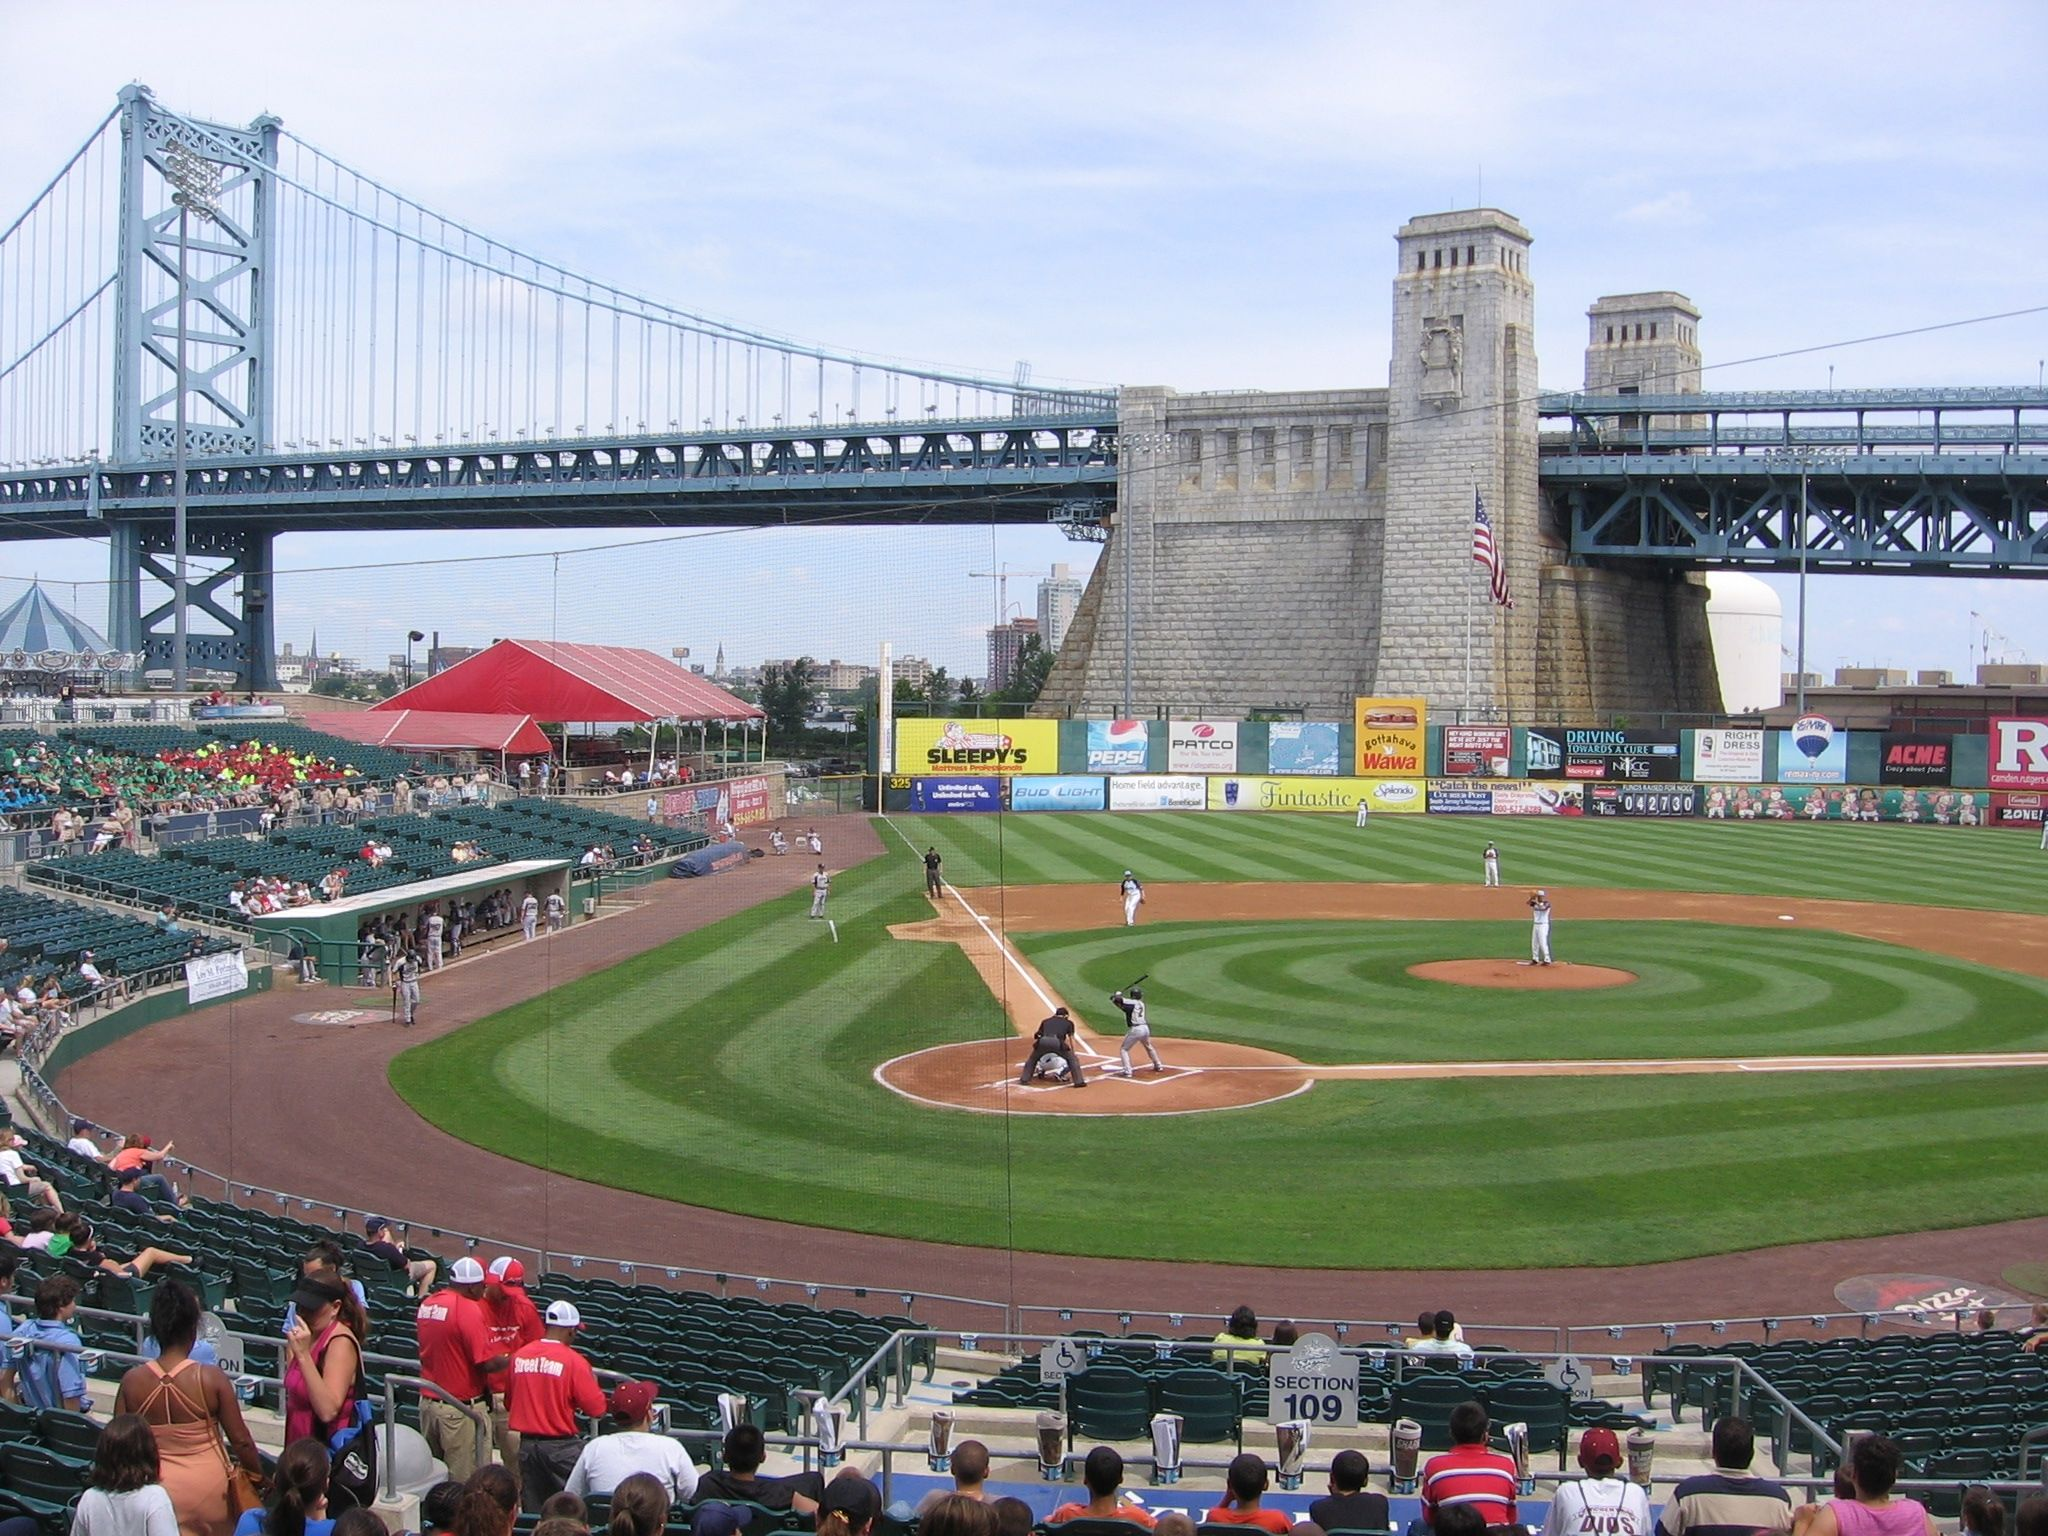 Campbell S Field In Camden New Jersey Home Of The Camden River Sharks Independent No Mlb Affiliation Atlantic Baseball Stadium New Jersey Neptune City